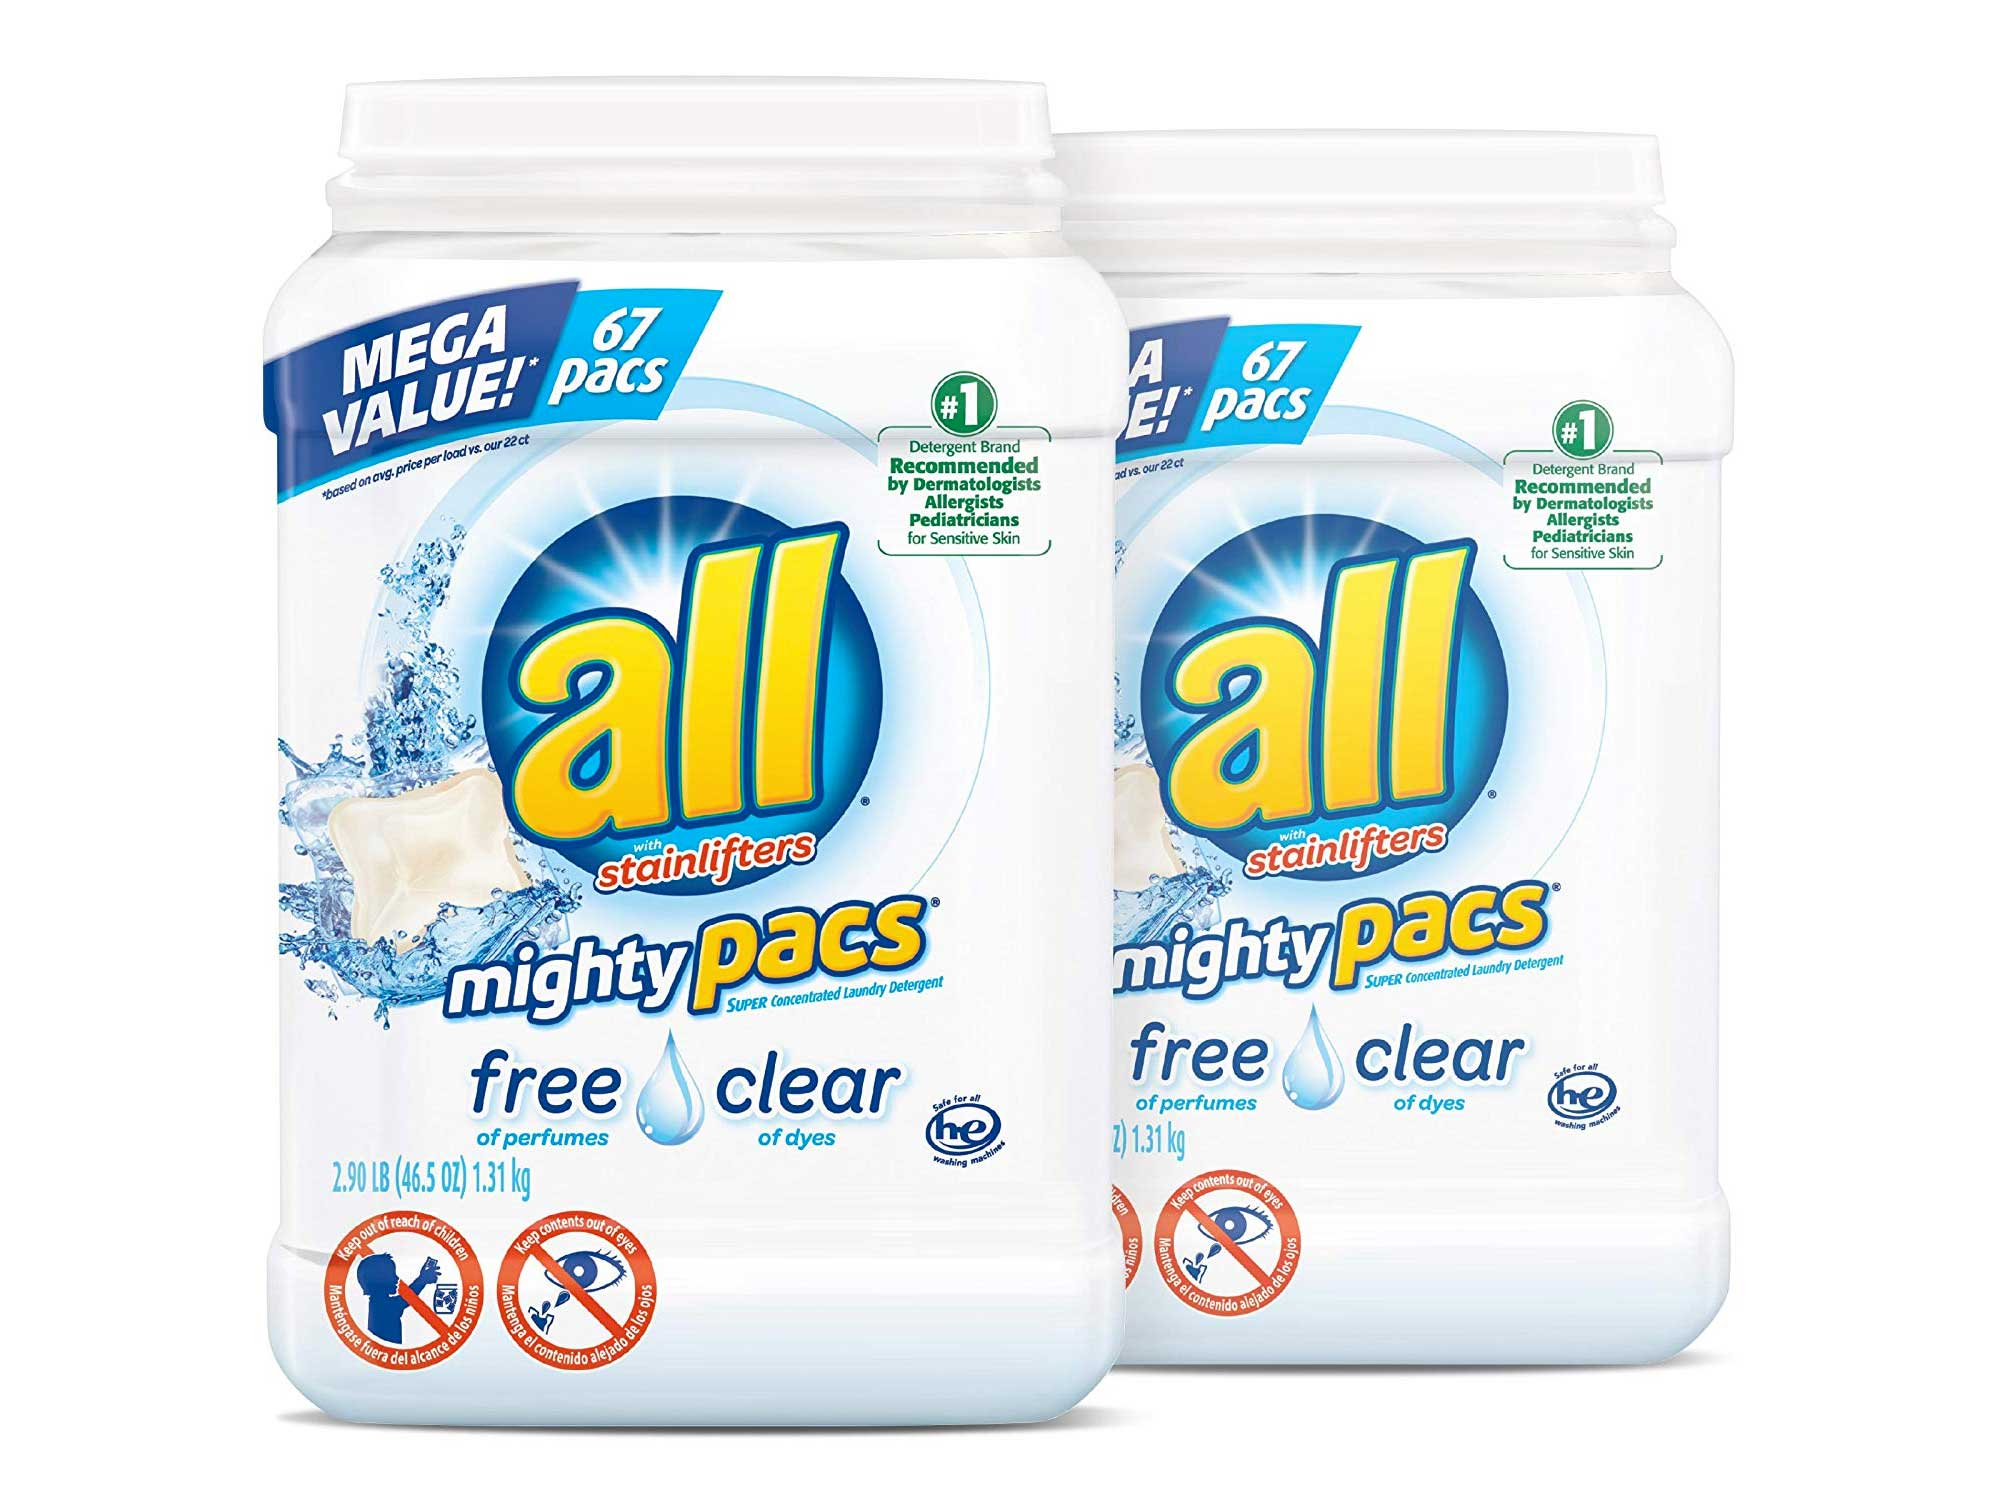 All perfume-free detergent